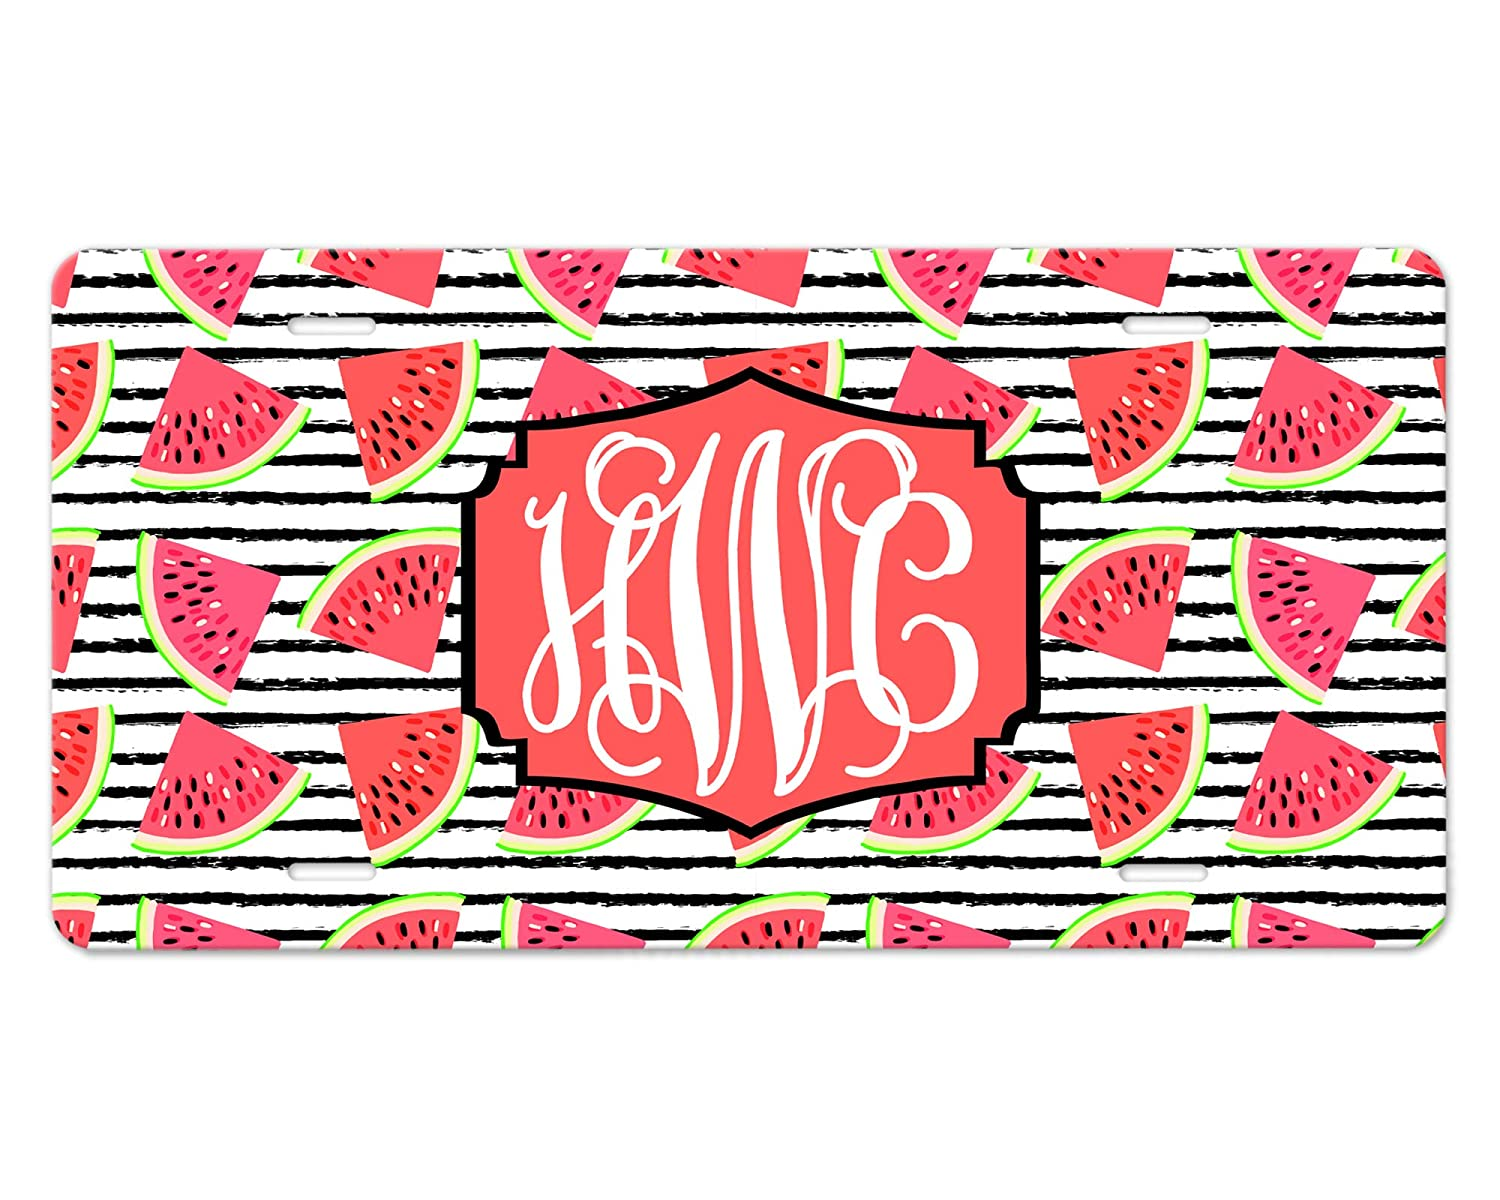 Made-to-Order Luxury License Plate - Watermelon Stripes shop Slices Pat With